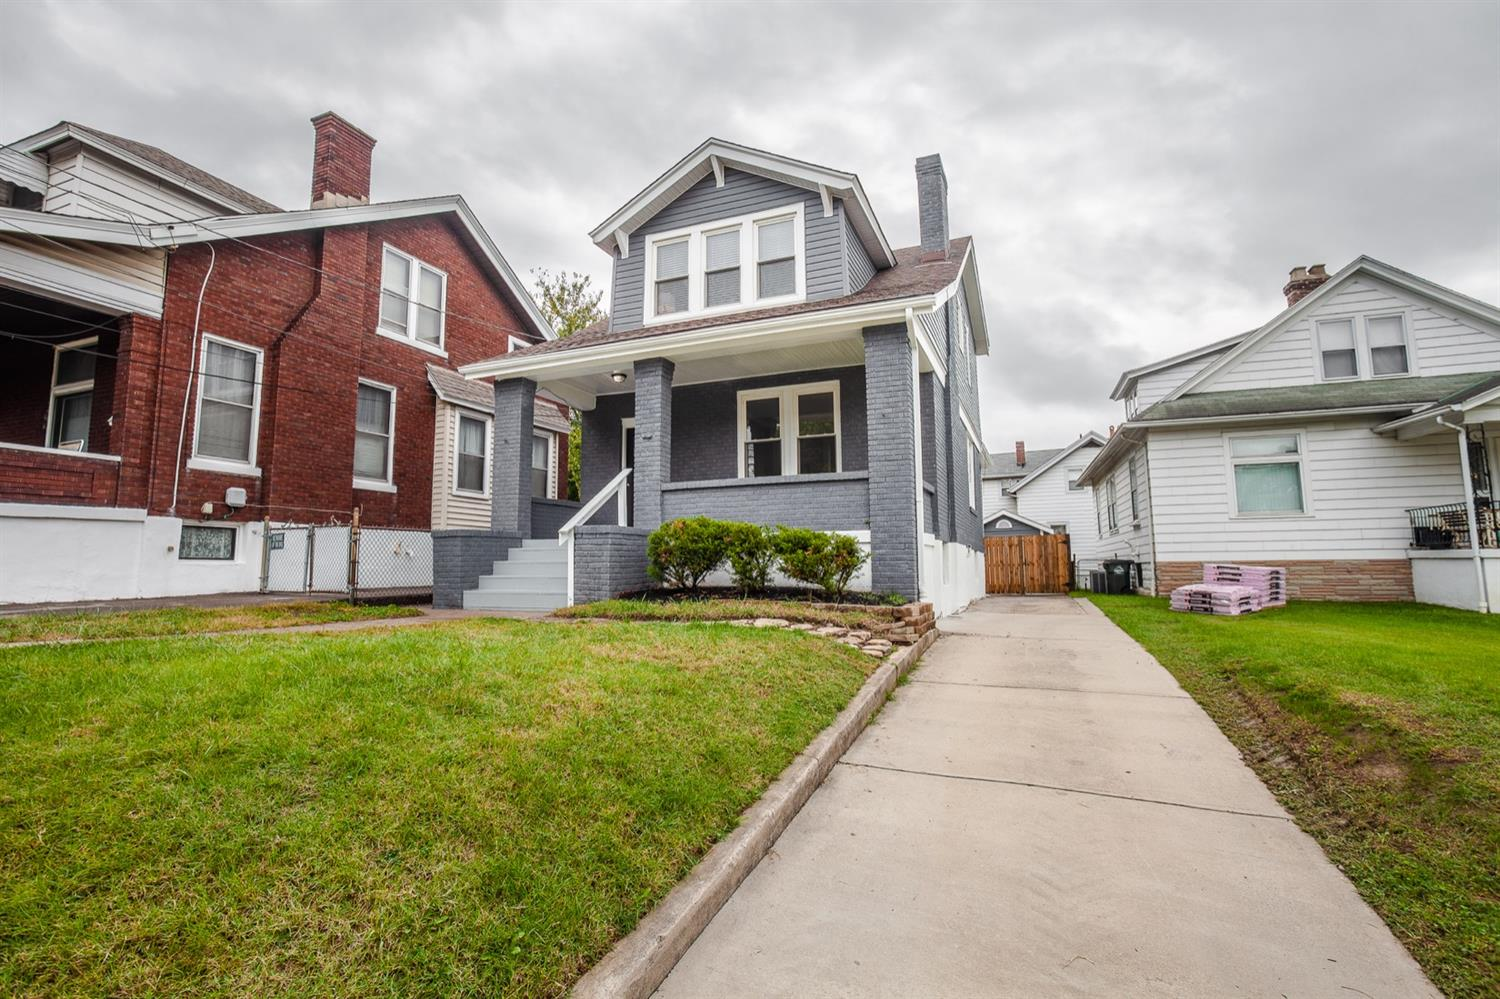 4204 Smith Road, Norwood, Ohio 45212, 4 Bedrooms Bedrooms, 7 Rooms Rooms,2 BathroomsBathrooms,Single Family Residence,For Sale,Smith,1718330